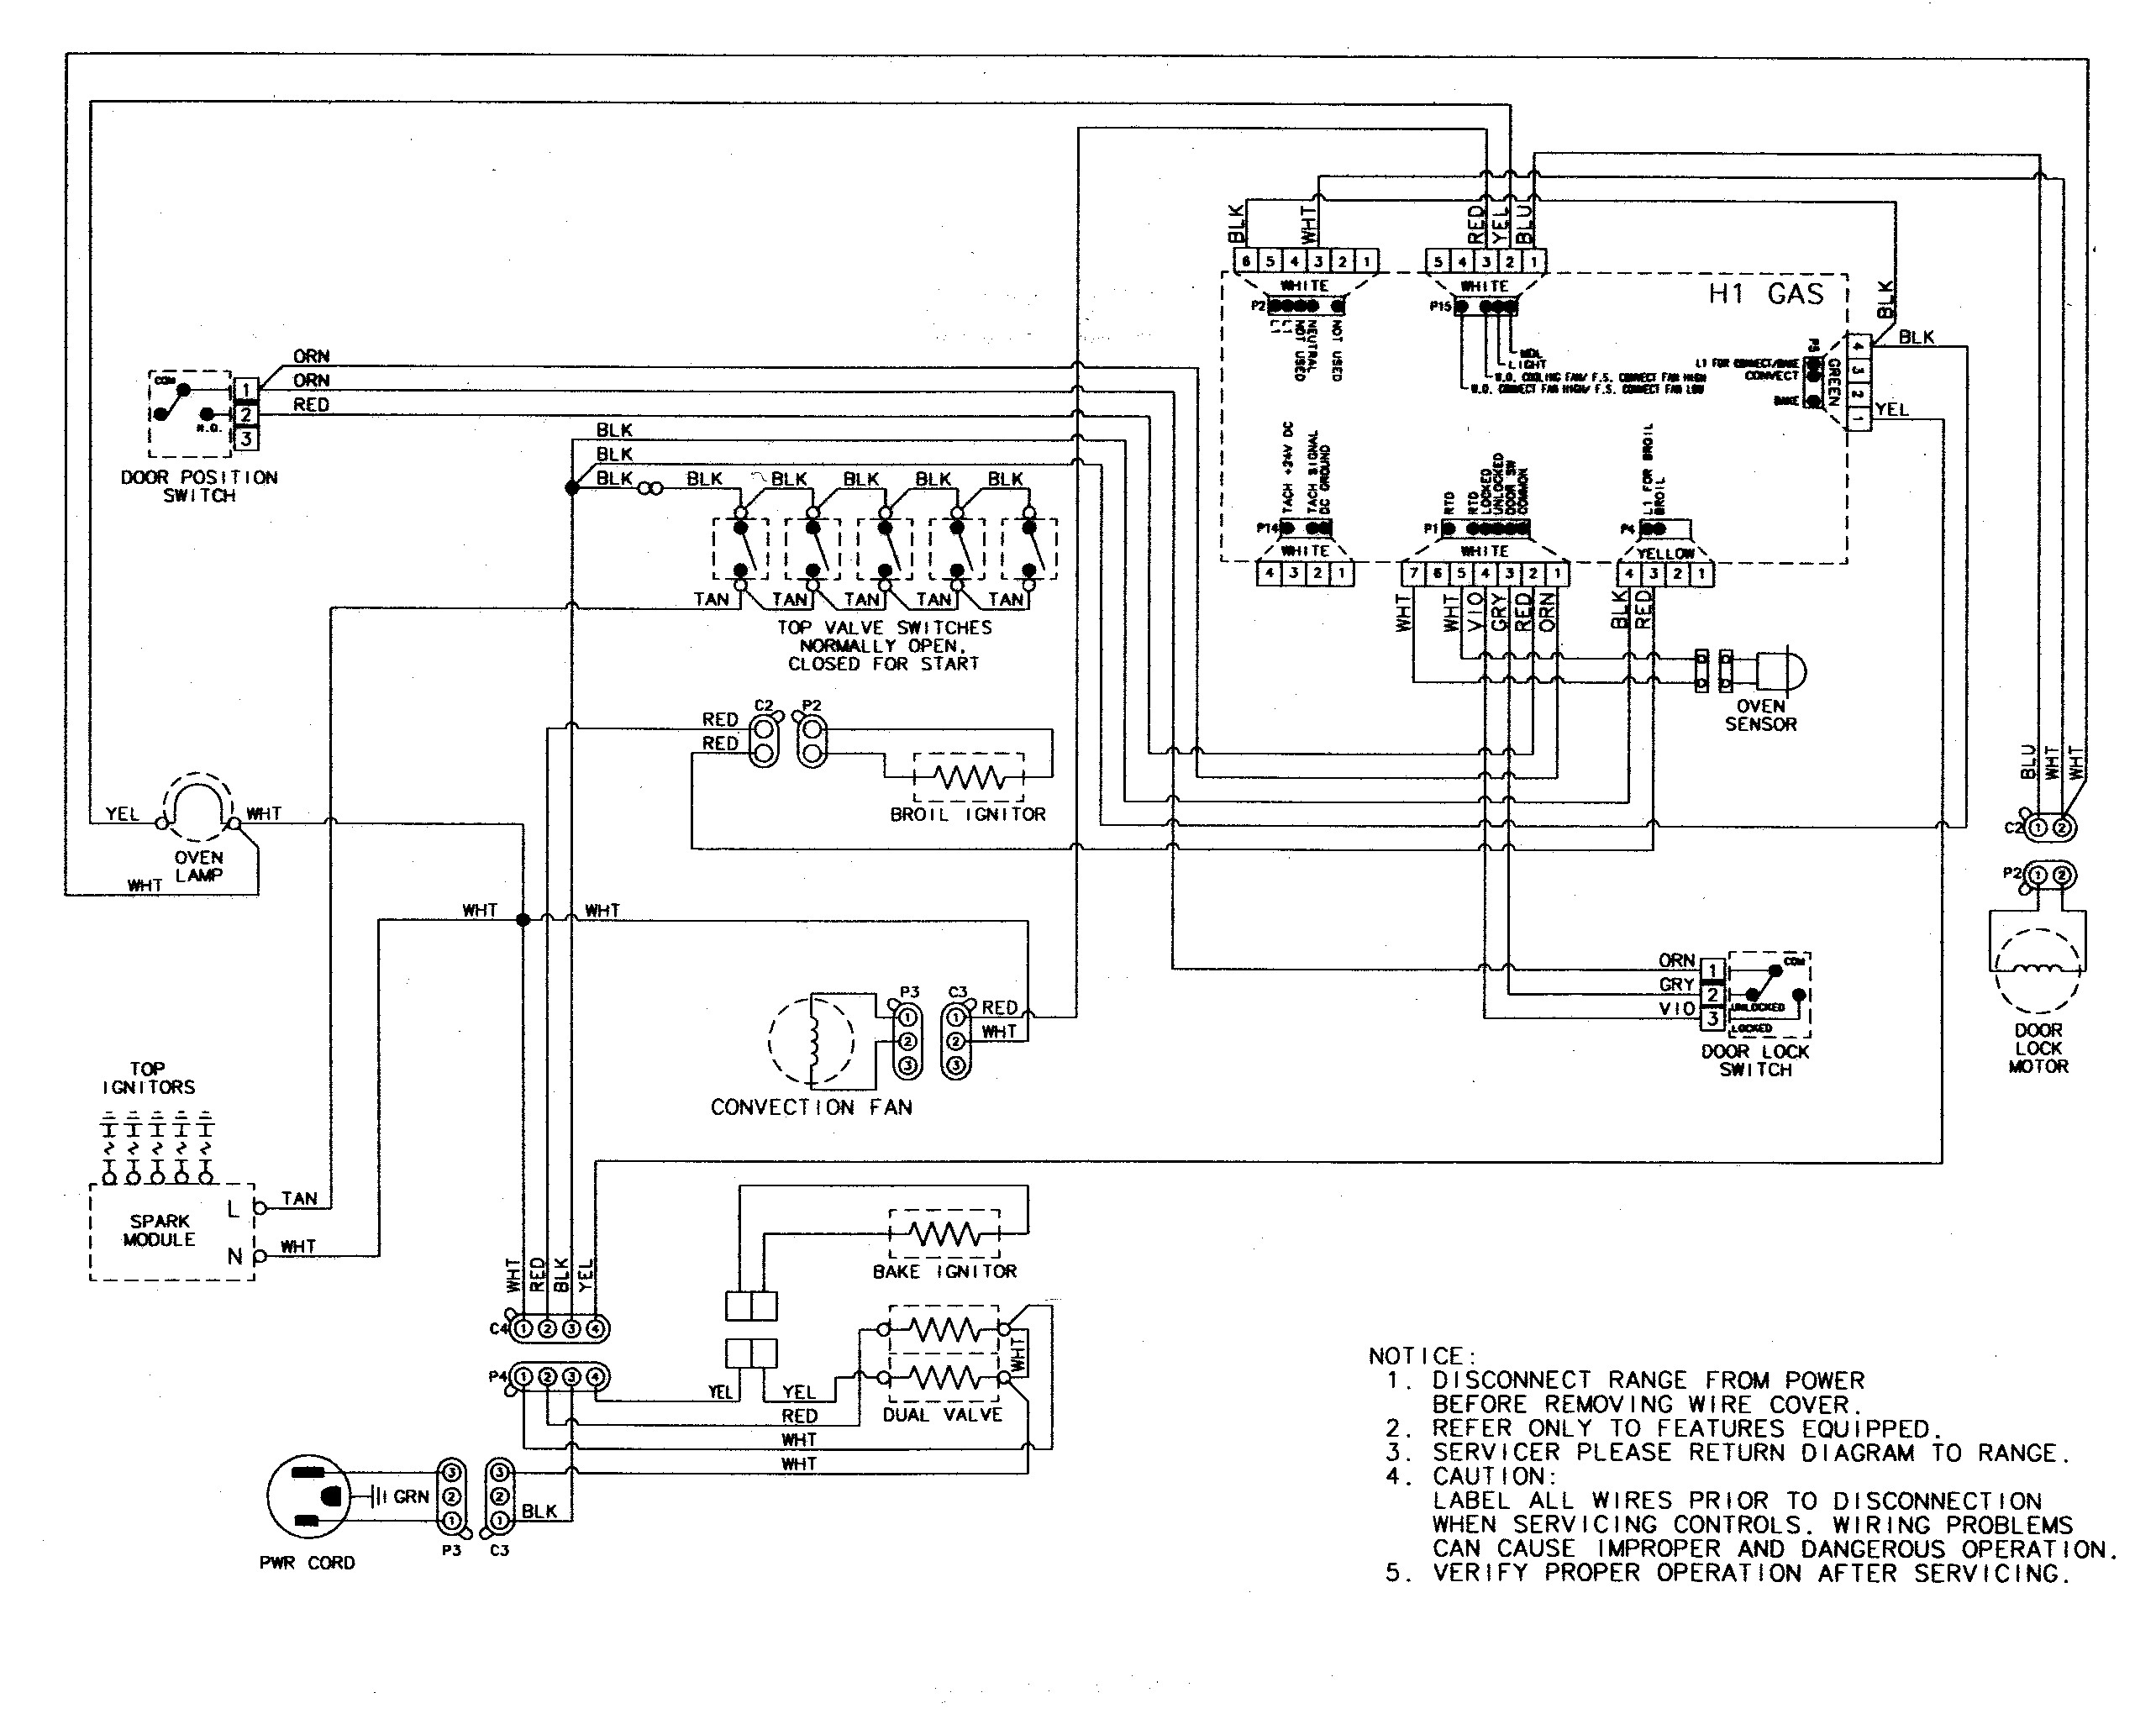 Baseboard Thermostat Wiring Diagram Ge Detailed Schematics Dryer Thermostats Wire Data Schema U2022 Mercury